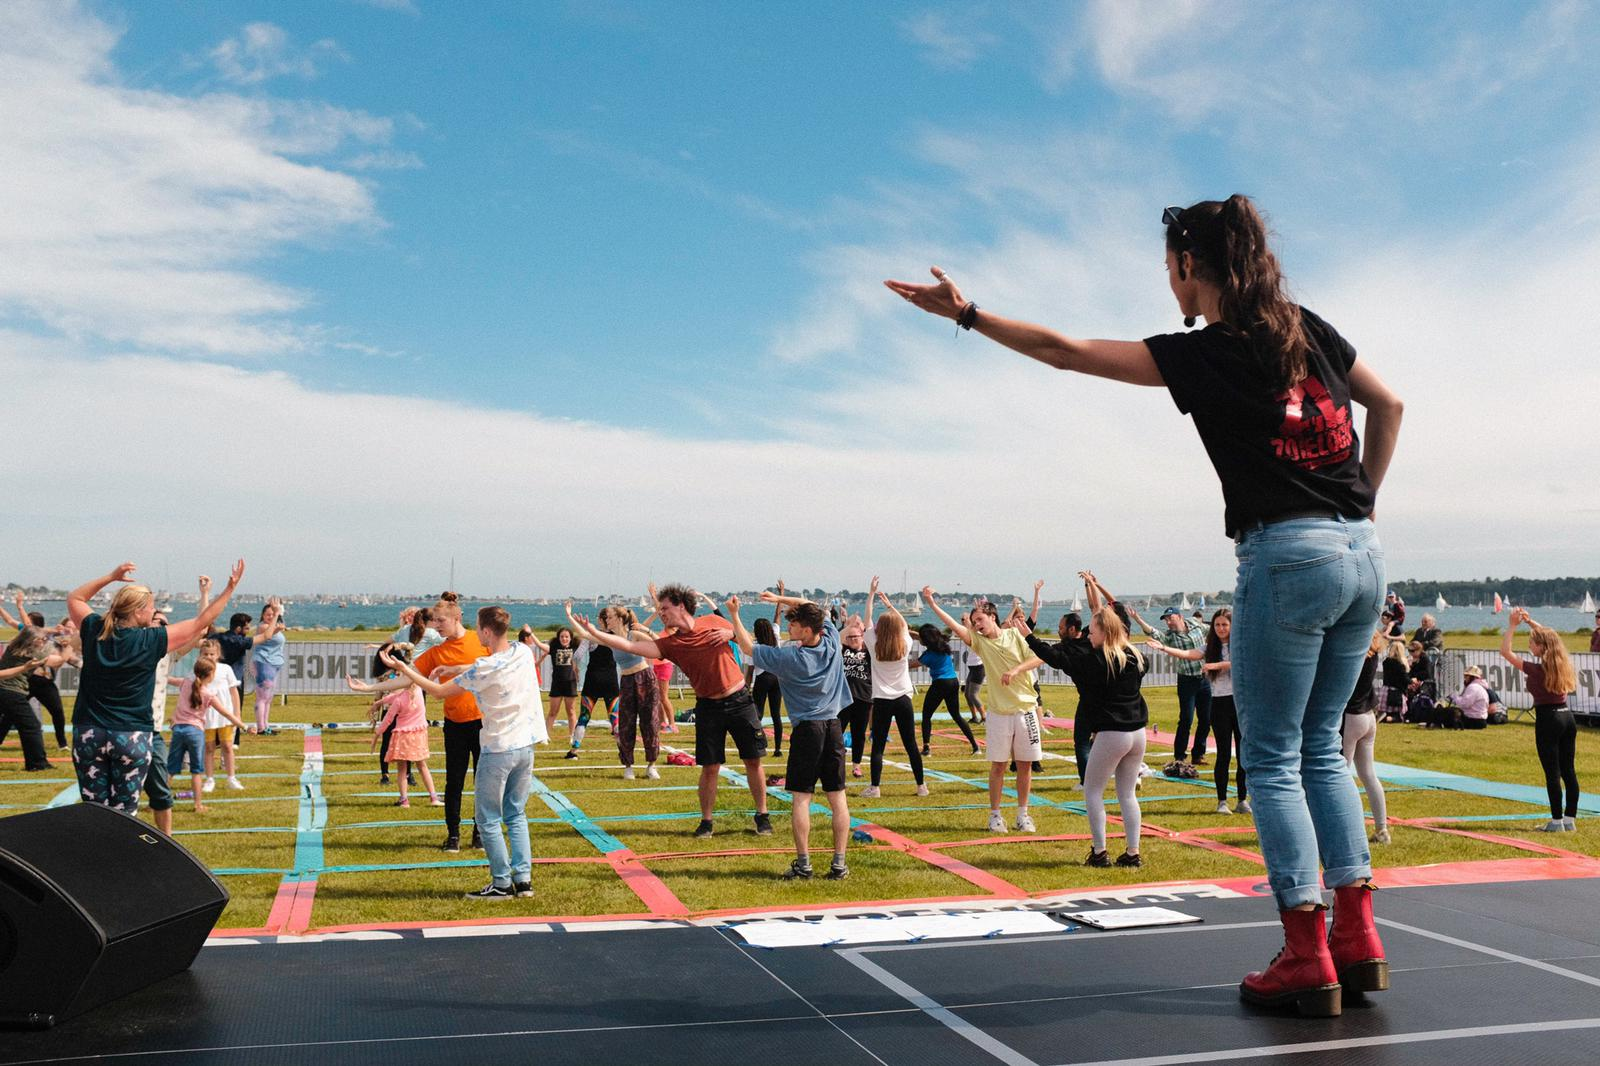 Dancers performing outside in a socially distanced grid